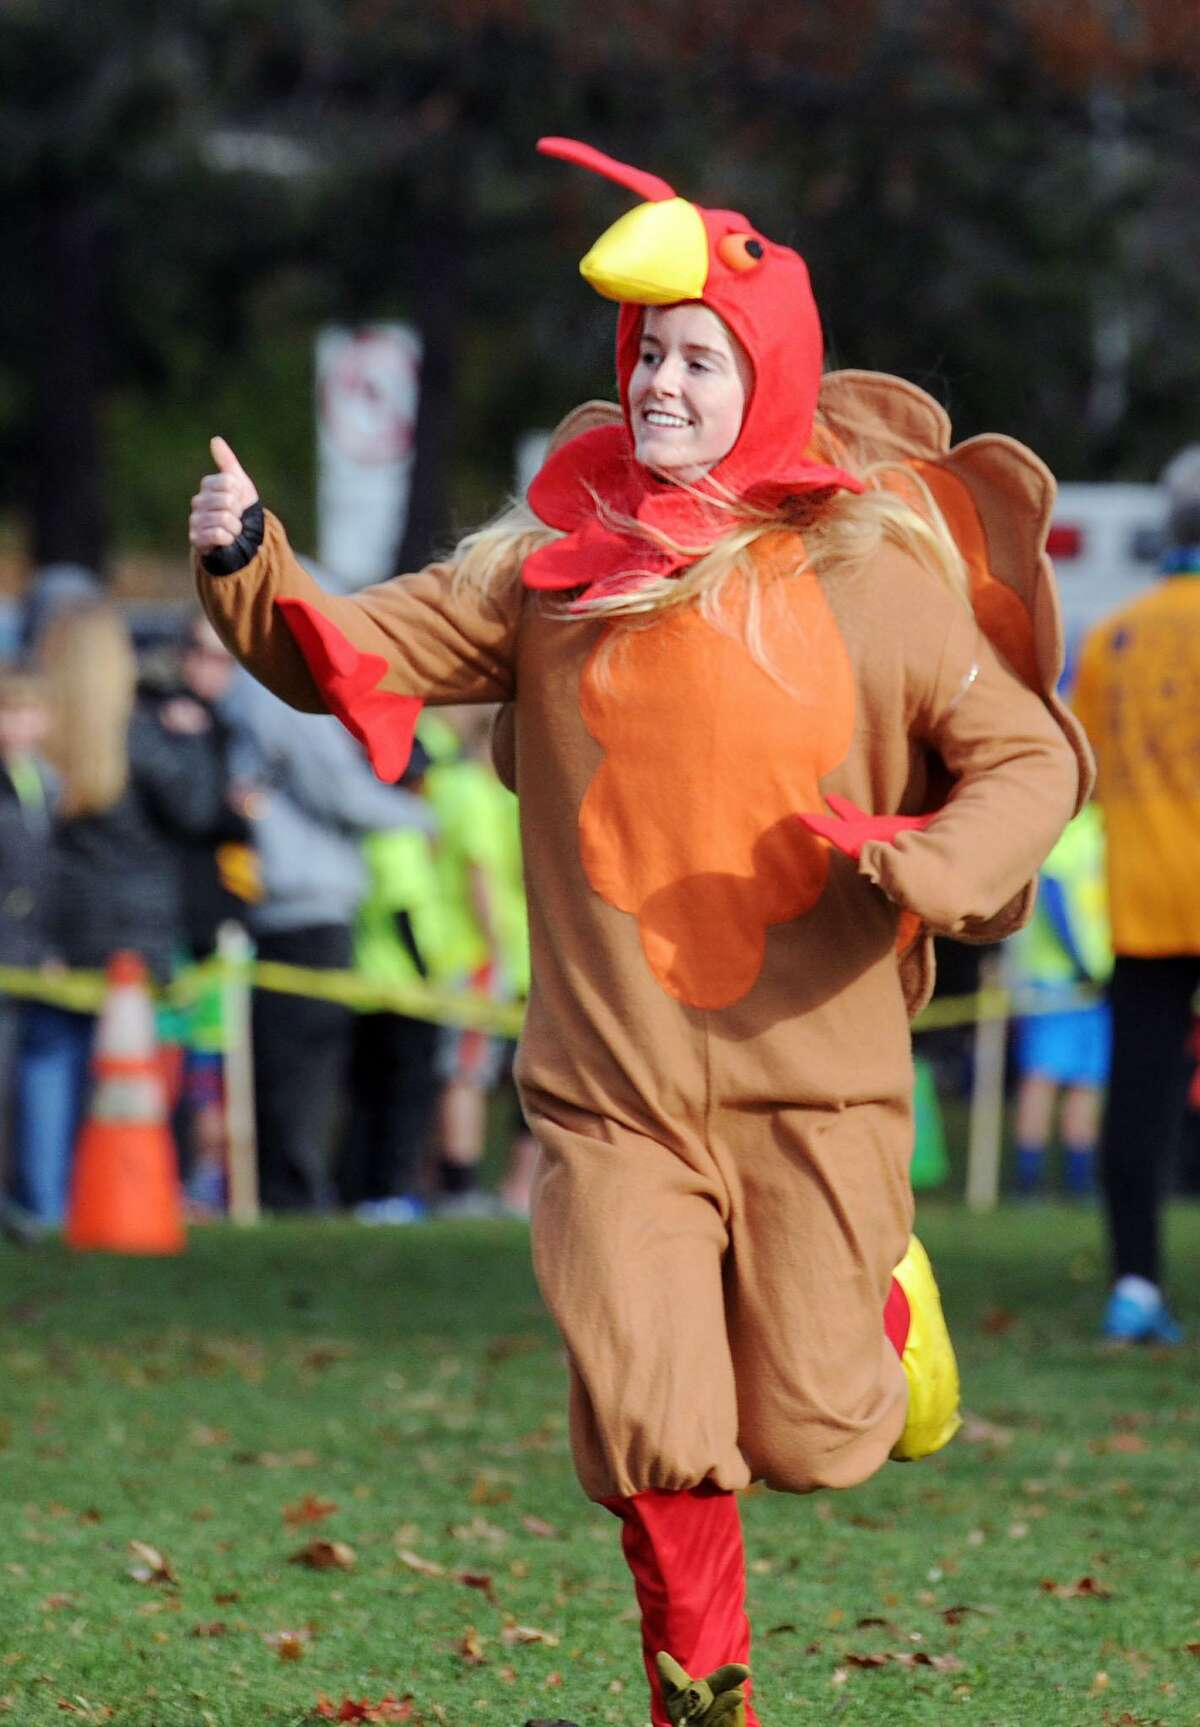 Kara Bittman, 16, of Greenwich, went full turkey with a costume as she participated in the Greenwich Alliance for Education's annual Turkey Trot starting at the Arch Street Teen Center in Greenwich, Conn., Saturday morning, Nov.26, 2016. Race official Mickey Yardis said over1,000 runners participated in the fund-raising benefit race. All proceeds from the race go to foster the Alliance's educational success programs for the Greenwich Public Schools.